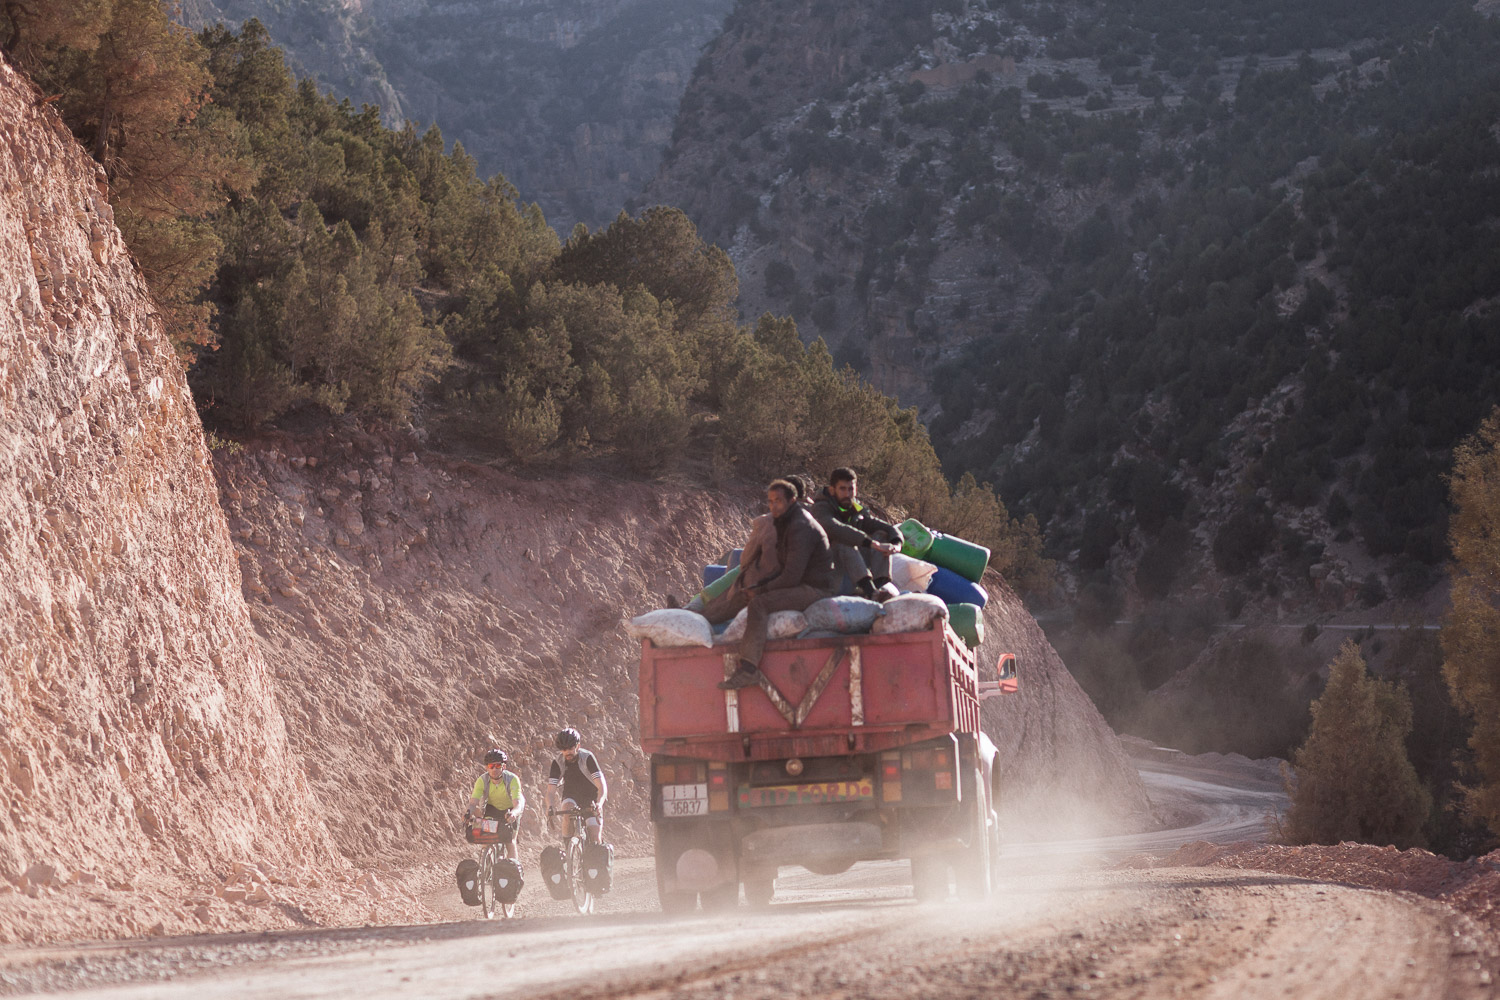 8bar bikes adventures morocco gravel 20151215 0070 bearbeitet - 8bar Adventures - Morocco - High Atlas - Part 2/2